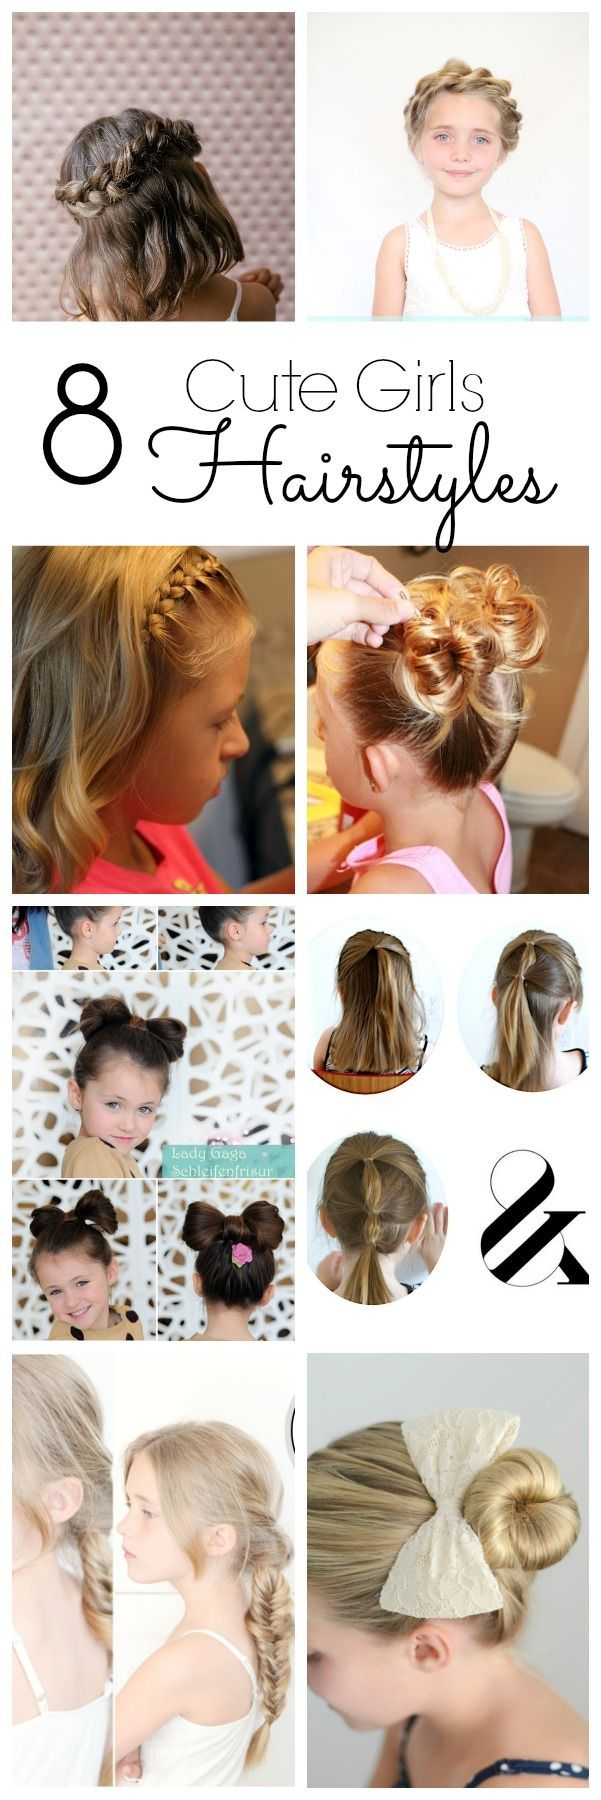 bow hairstyles little girl hairstyles school hairstyles super cute ...